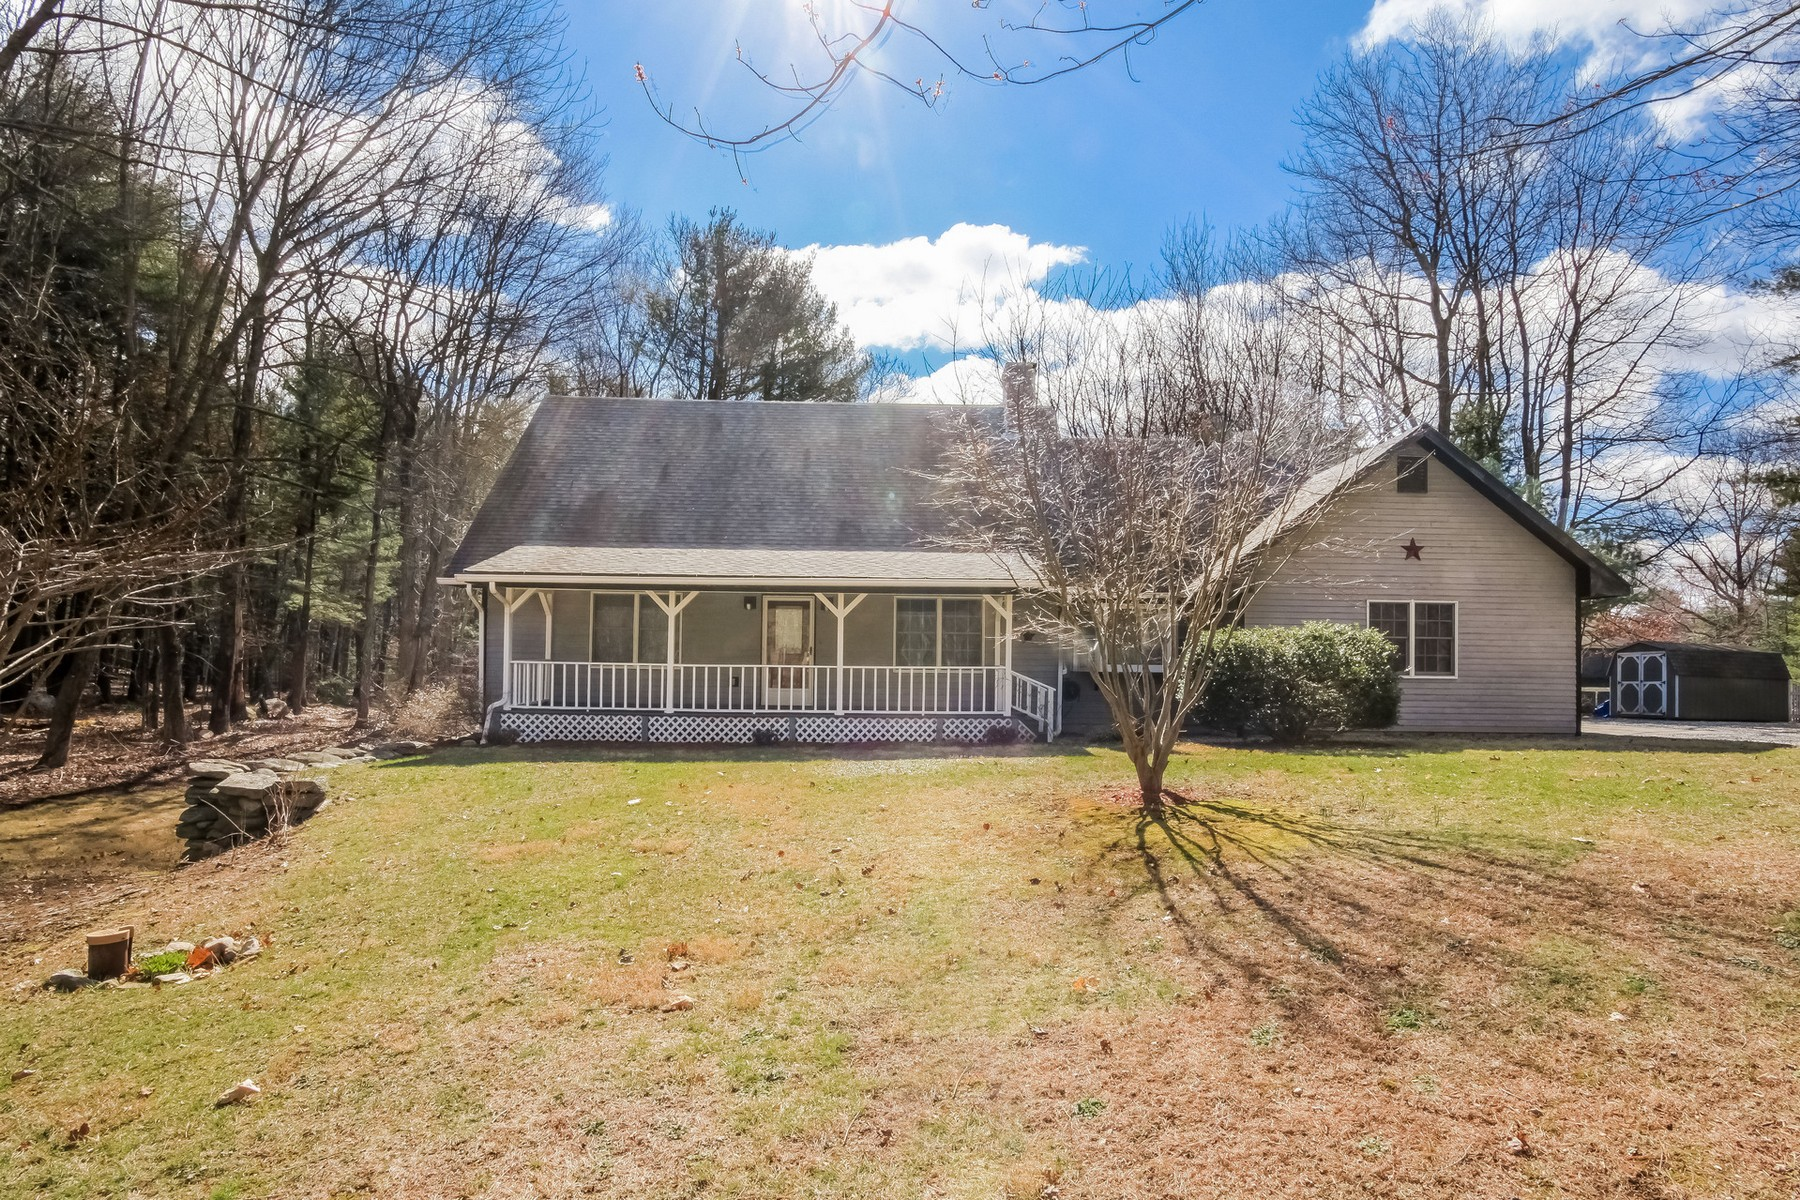 Single Family Home for Sale at Live country and comfort with plenty of privacy 437 Brooklyn Rd Canterbury, Connecticut, 06331 United States